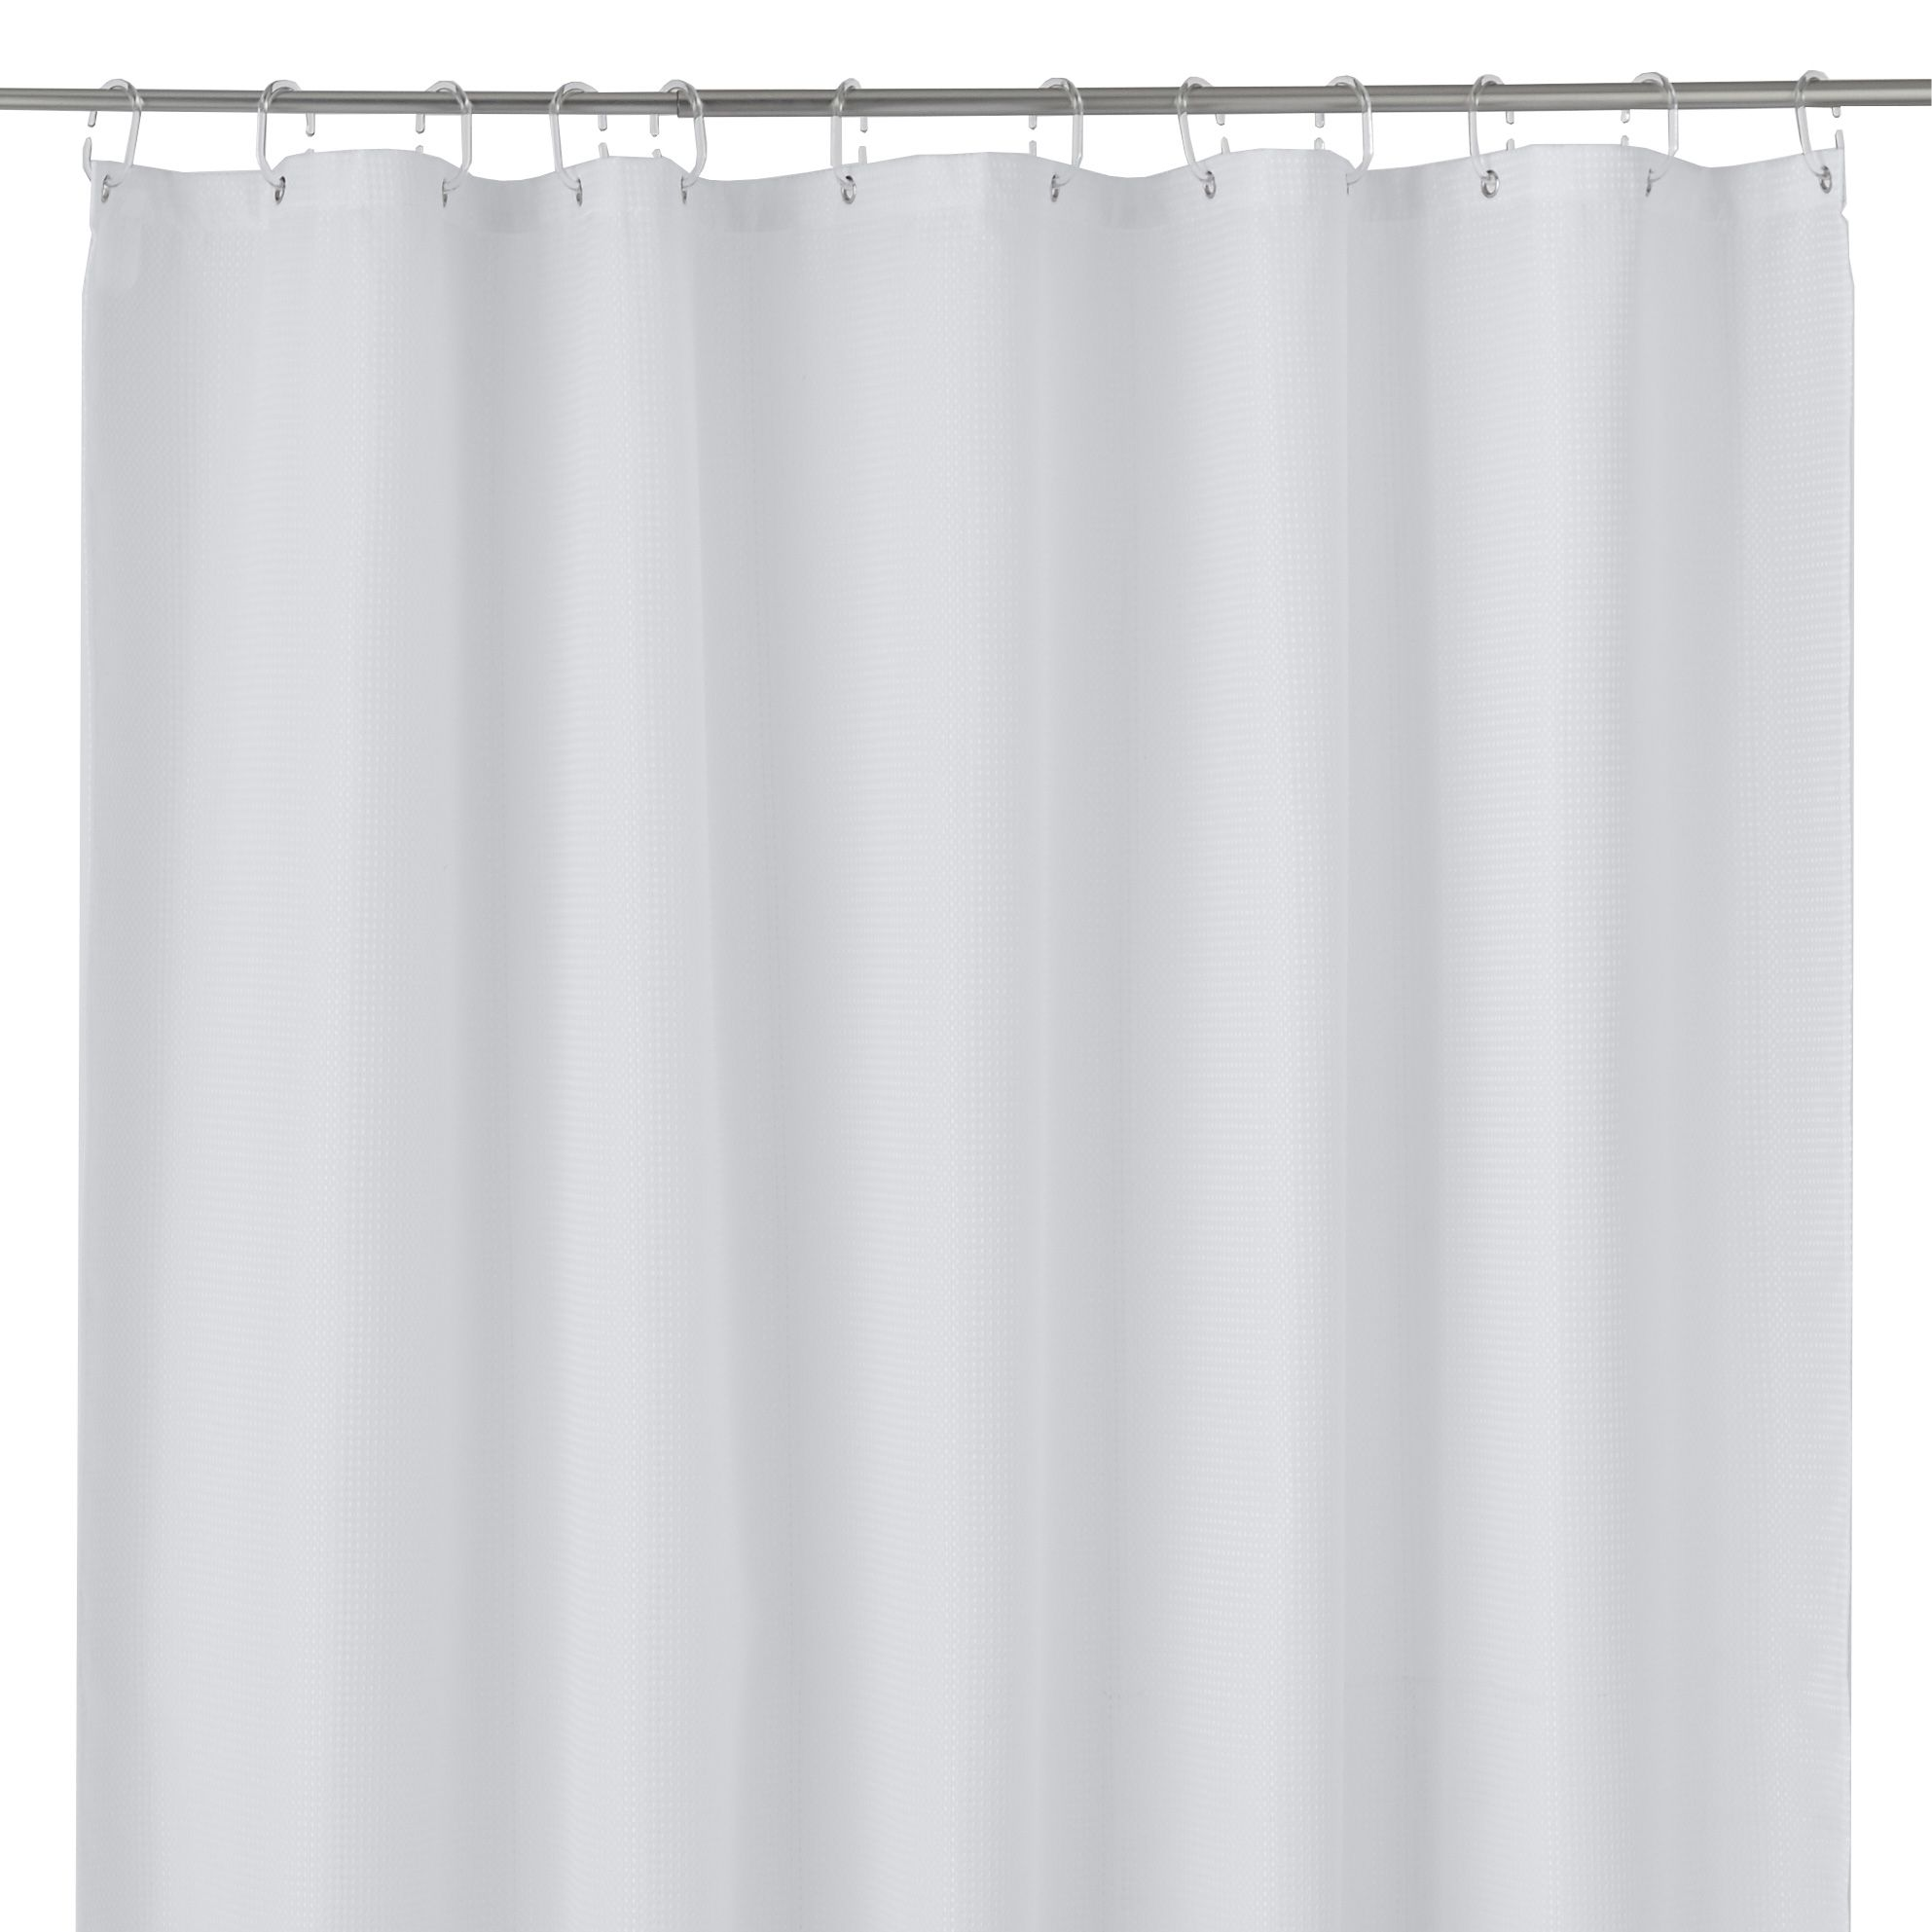 Cooke & Lewis Cecina White Waffle Shower Curtain (l)1800 Mm